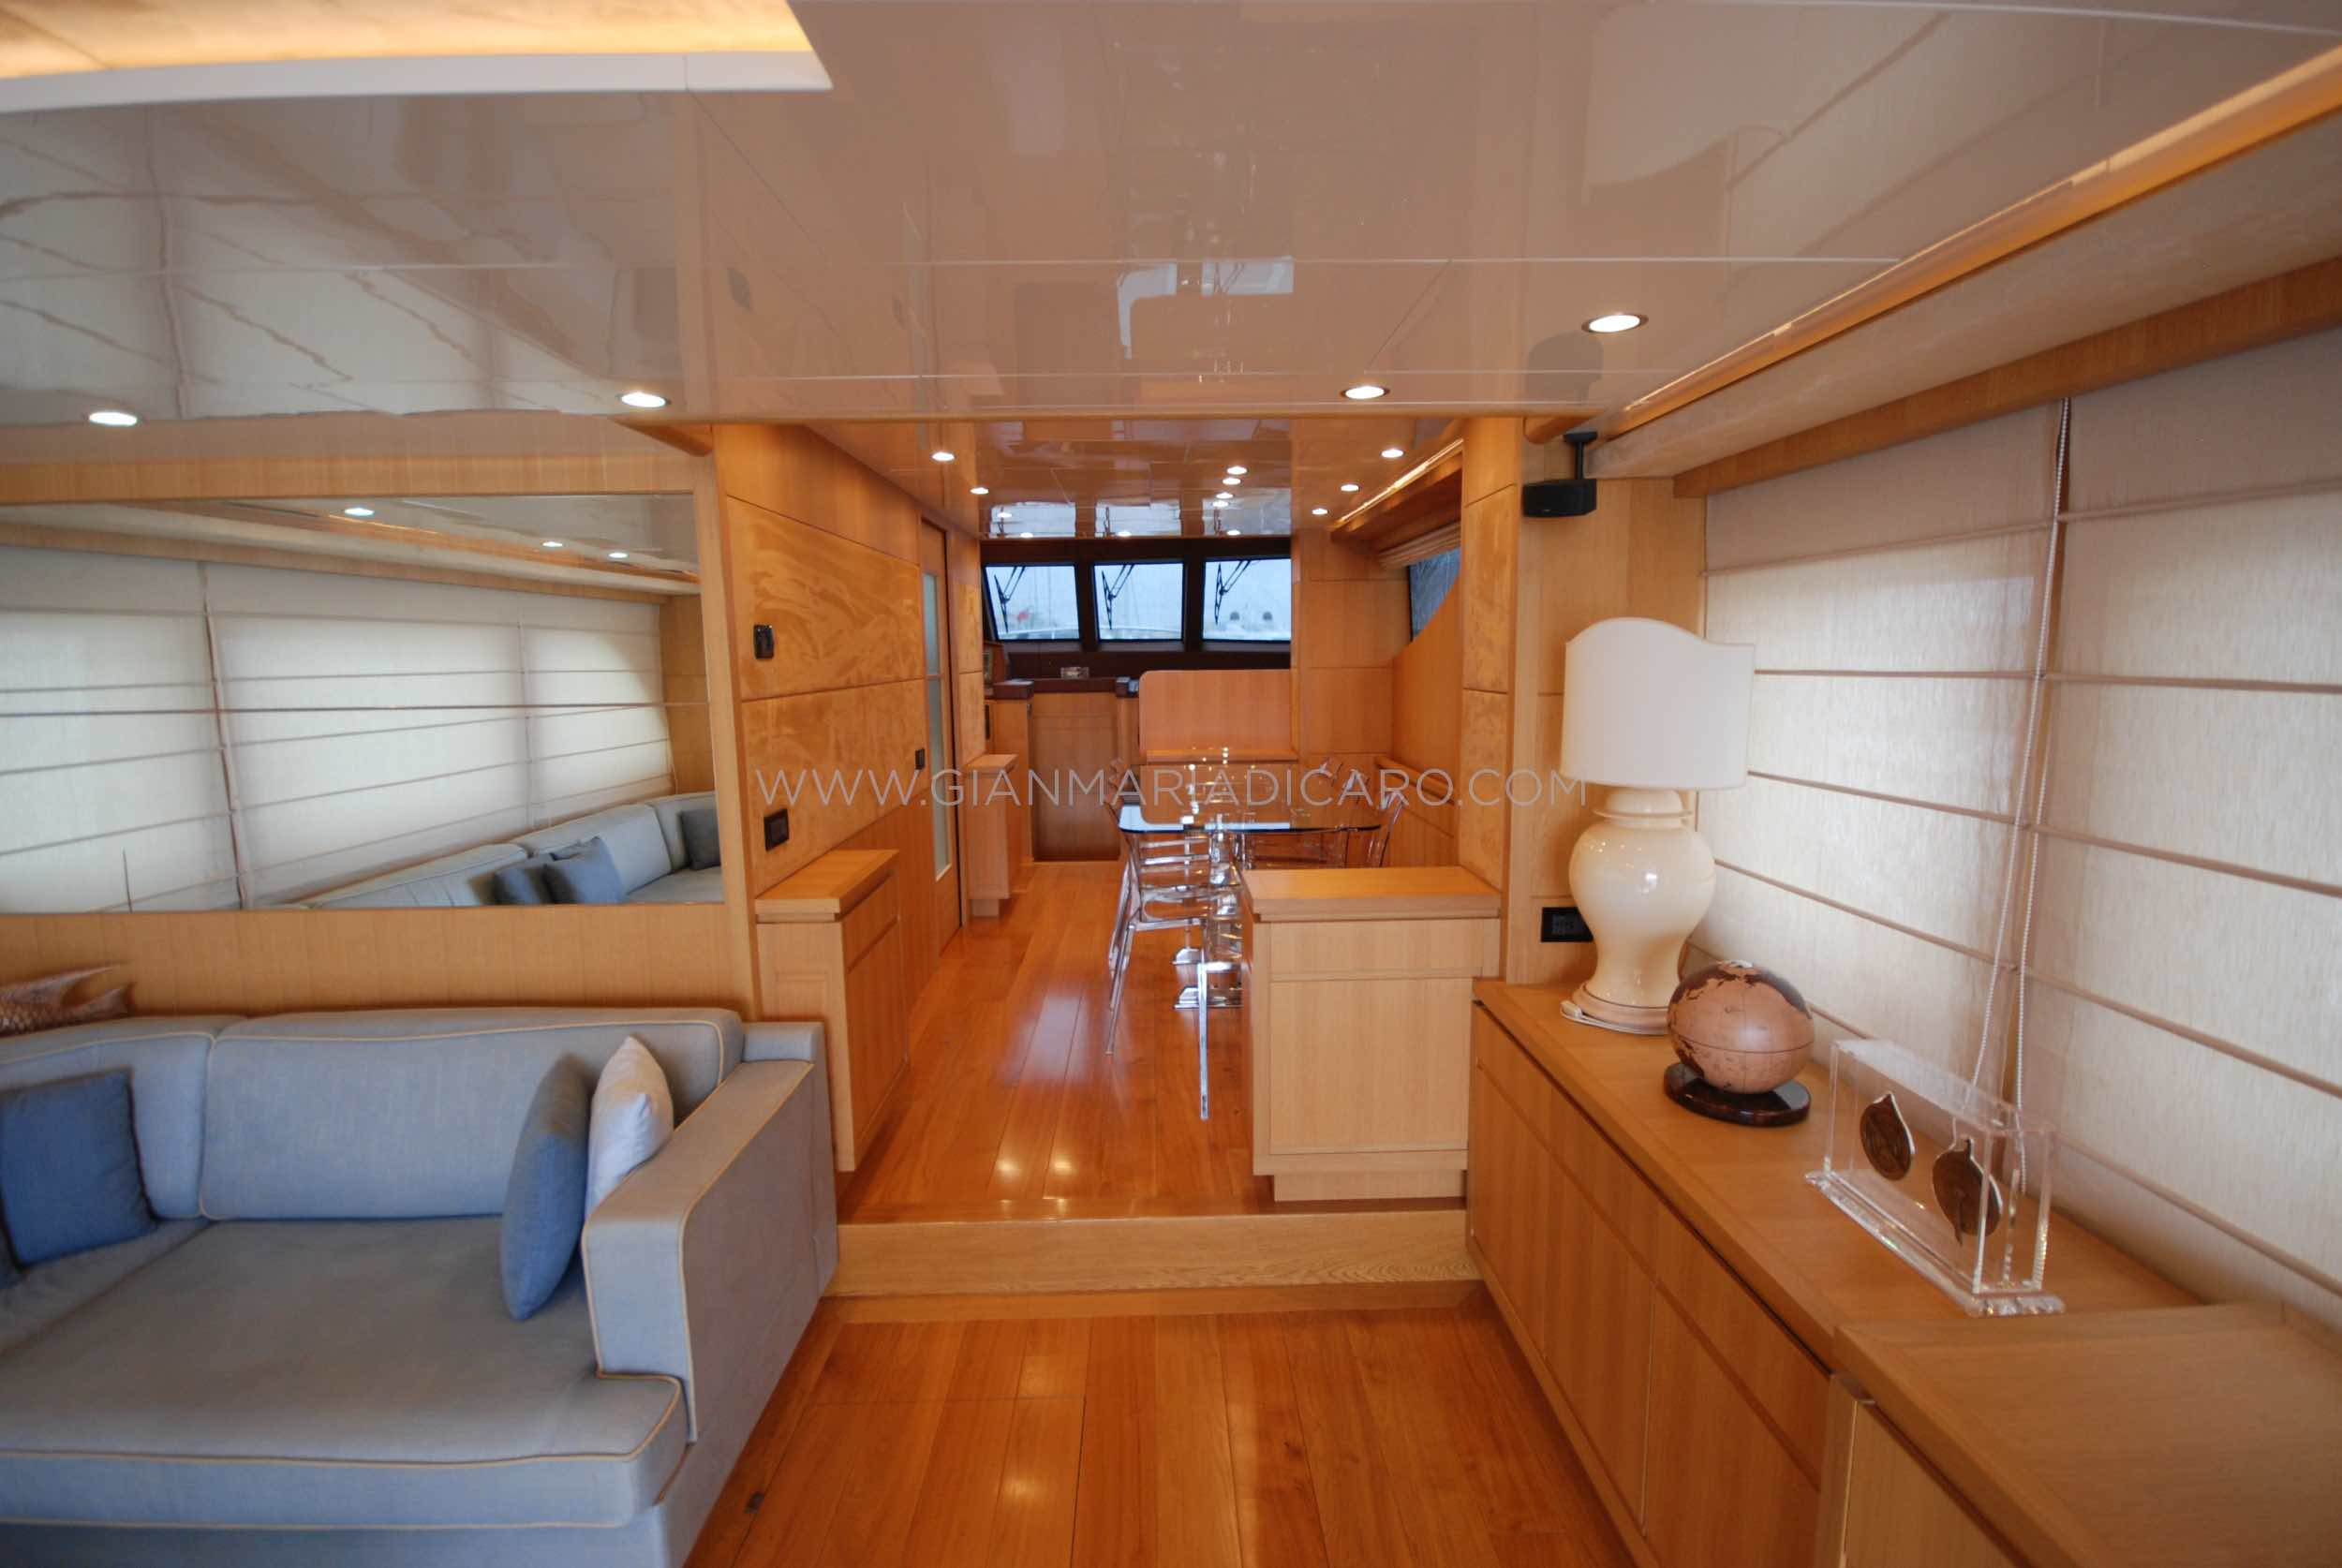 emys-yacht-22-unica-for-sale-125.jpg